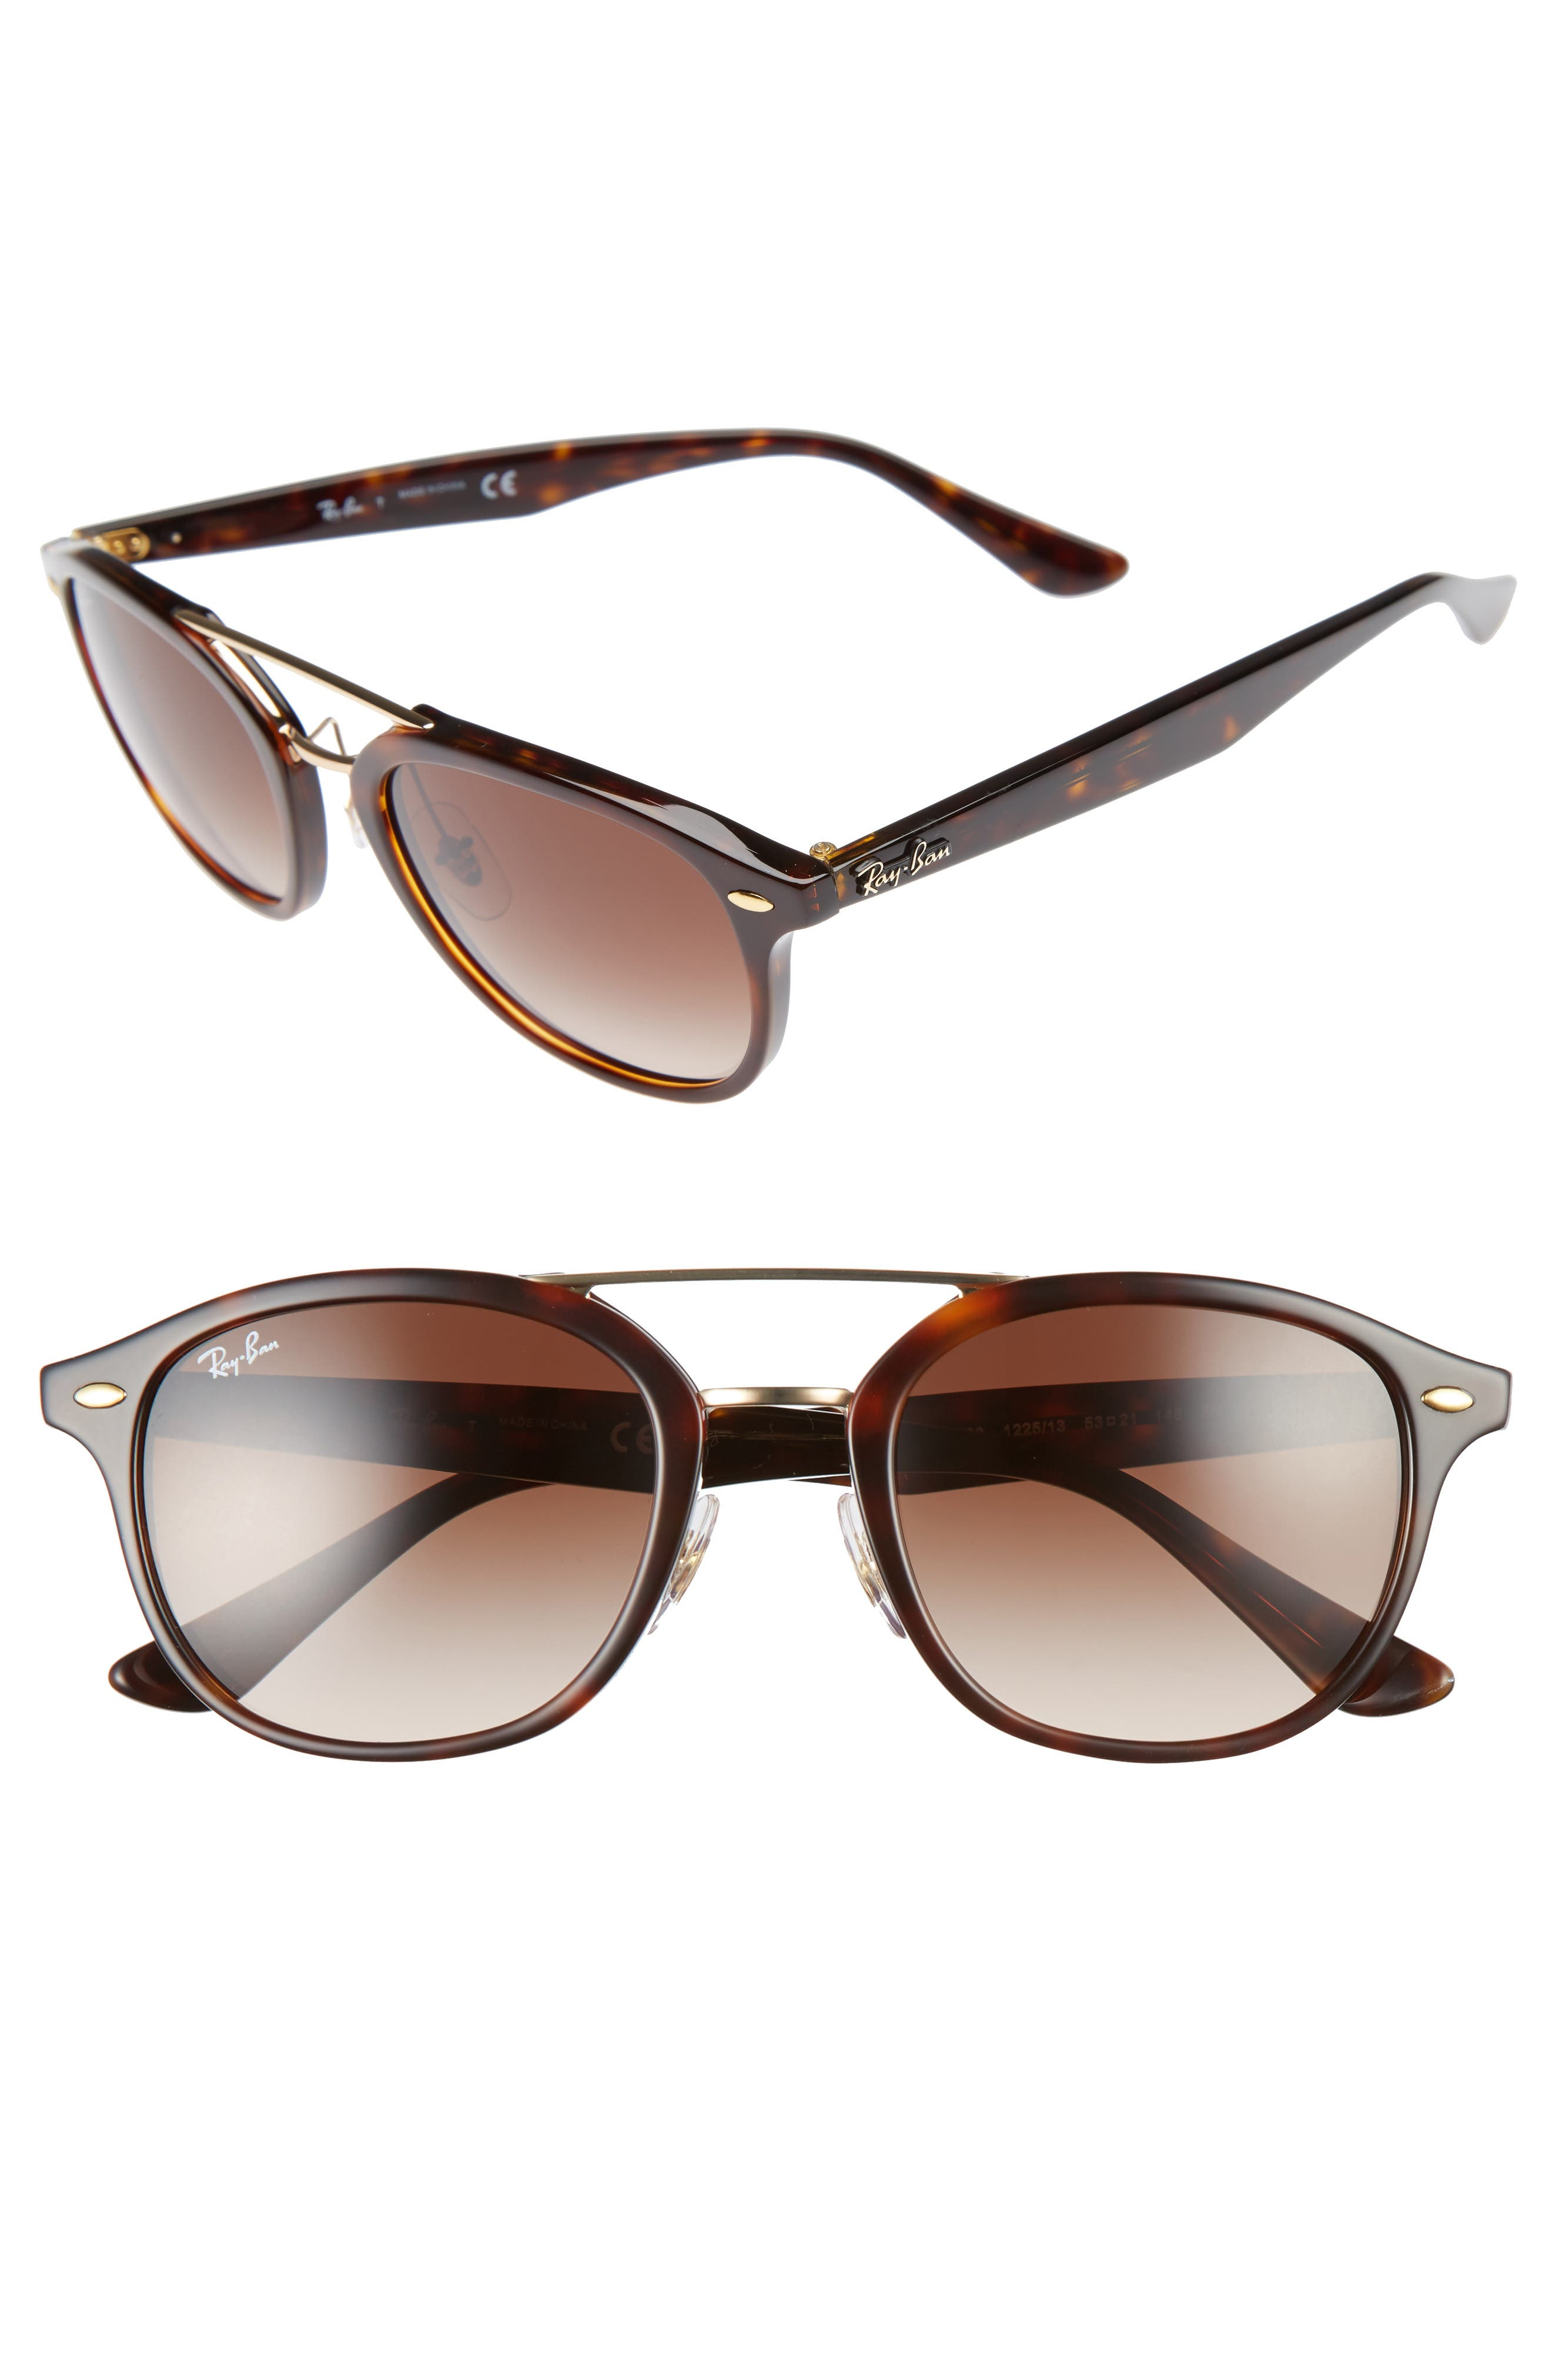 Main Image - Ray-Ban Highstreet 53mm Gradient Lens Sunglasses